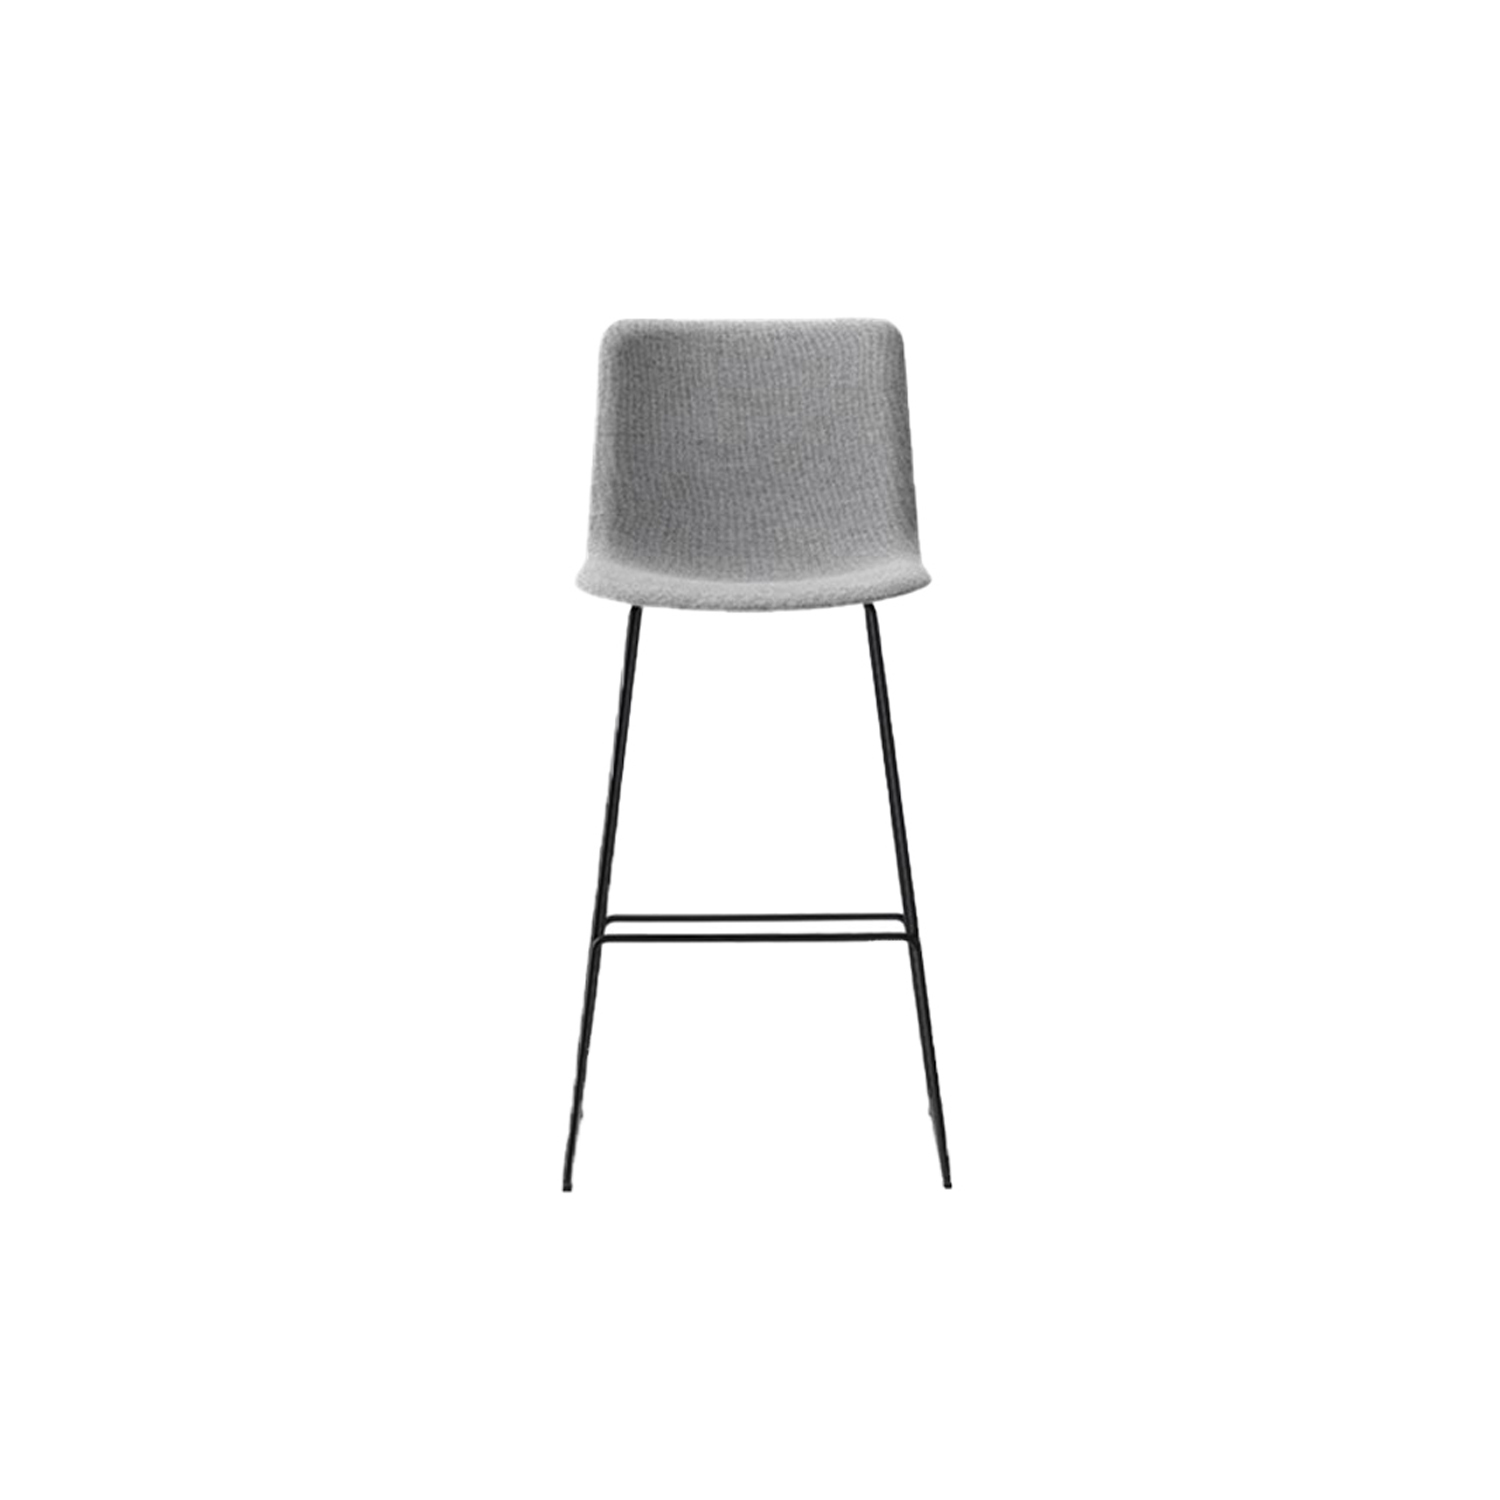 Pato Sledge Barstool Fully Upholstered - Pato is a carefully crafted multipurpose chair in eco-friendly polypropylene that can be used outdoors. The chair is available with a range of optional features including coupling. The chair can be tuned from basic to exclusive with optional upholstery.